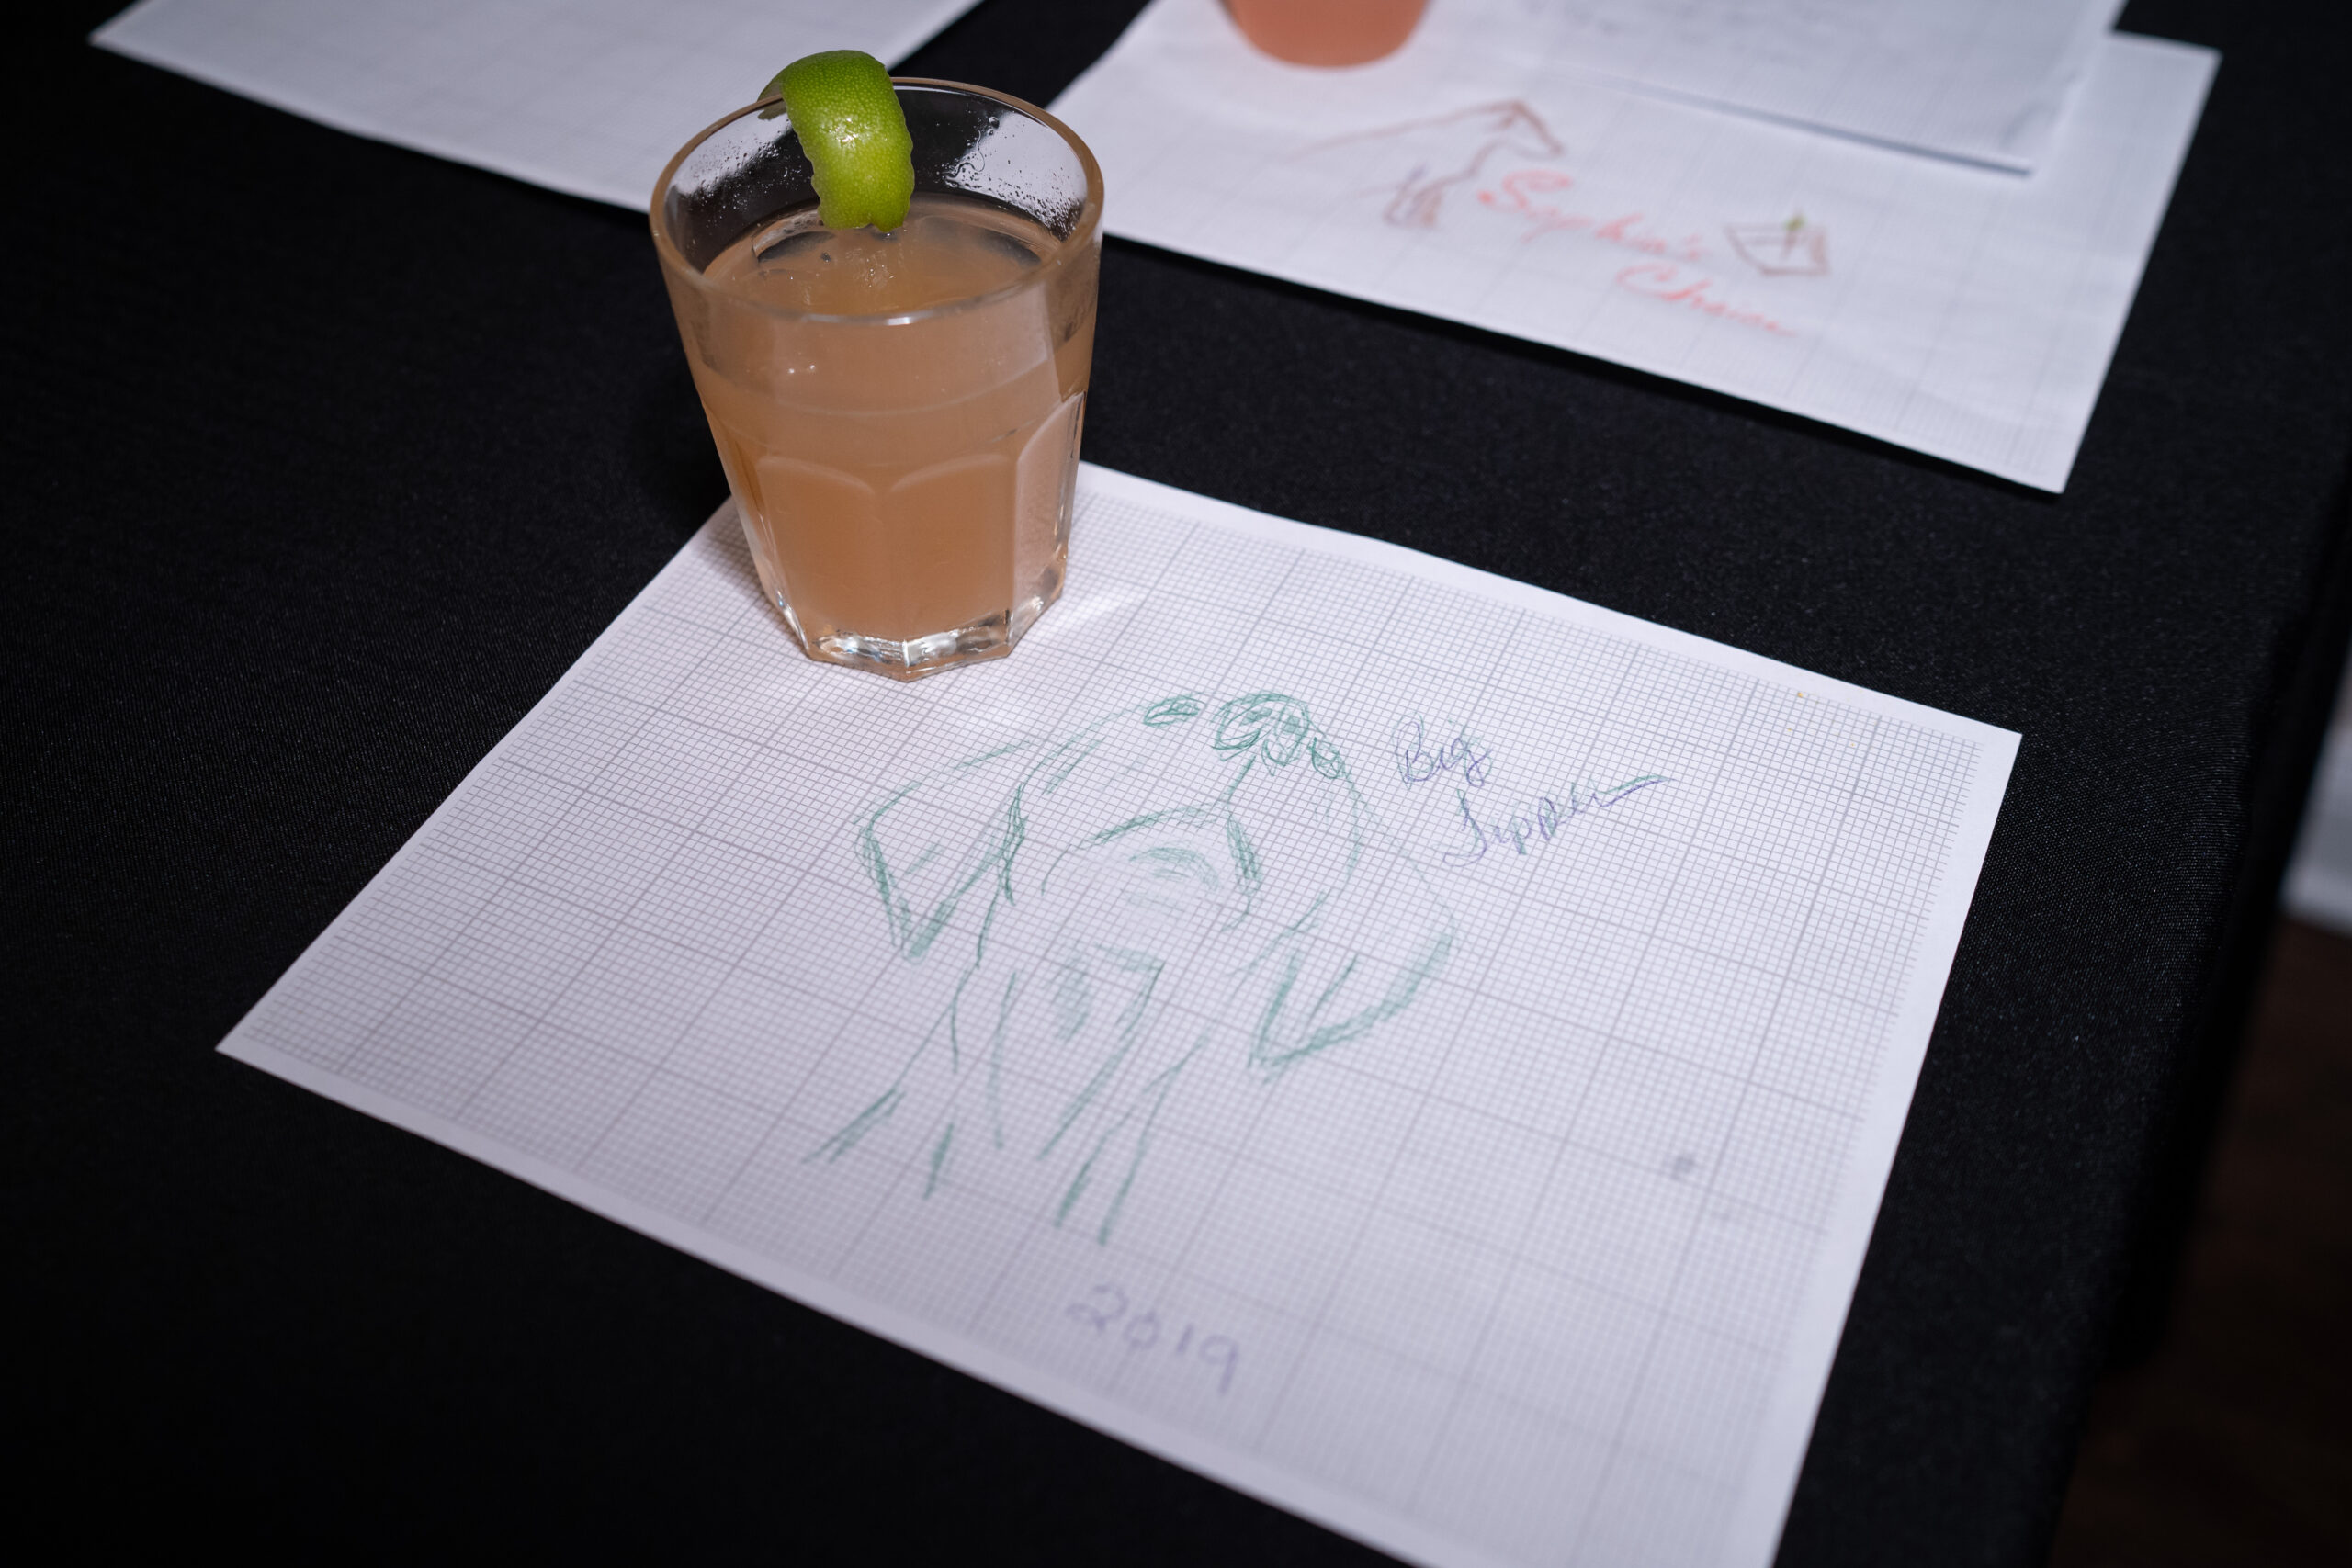 The drinks are submitted for judging